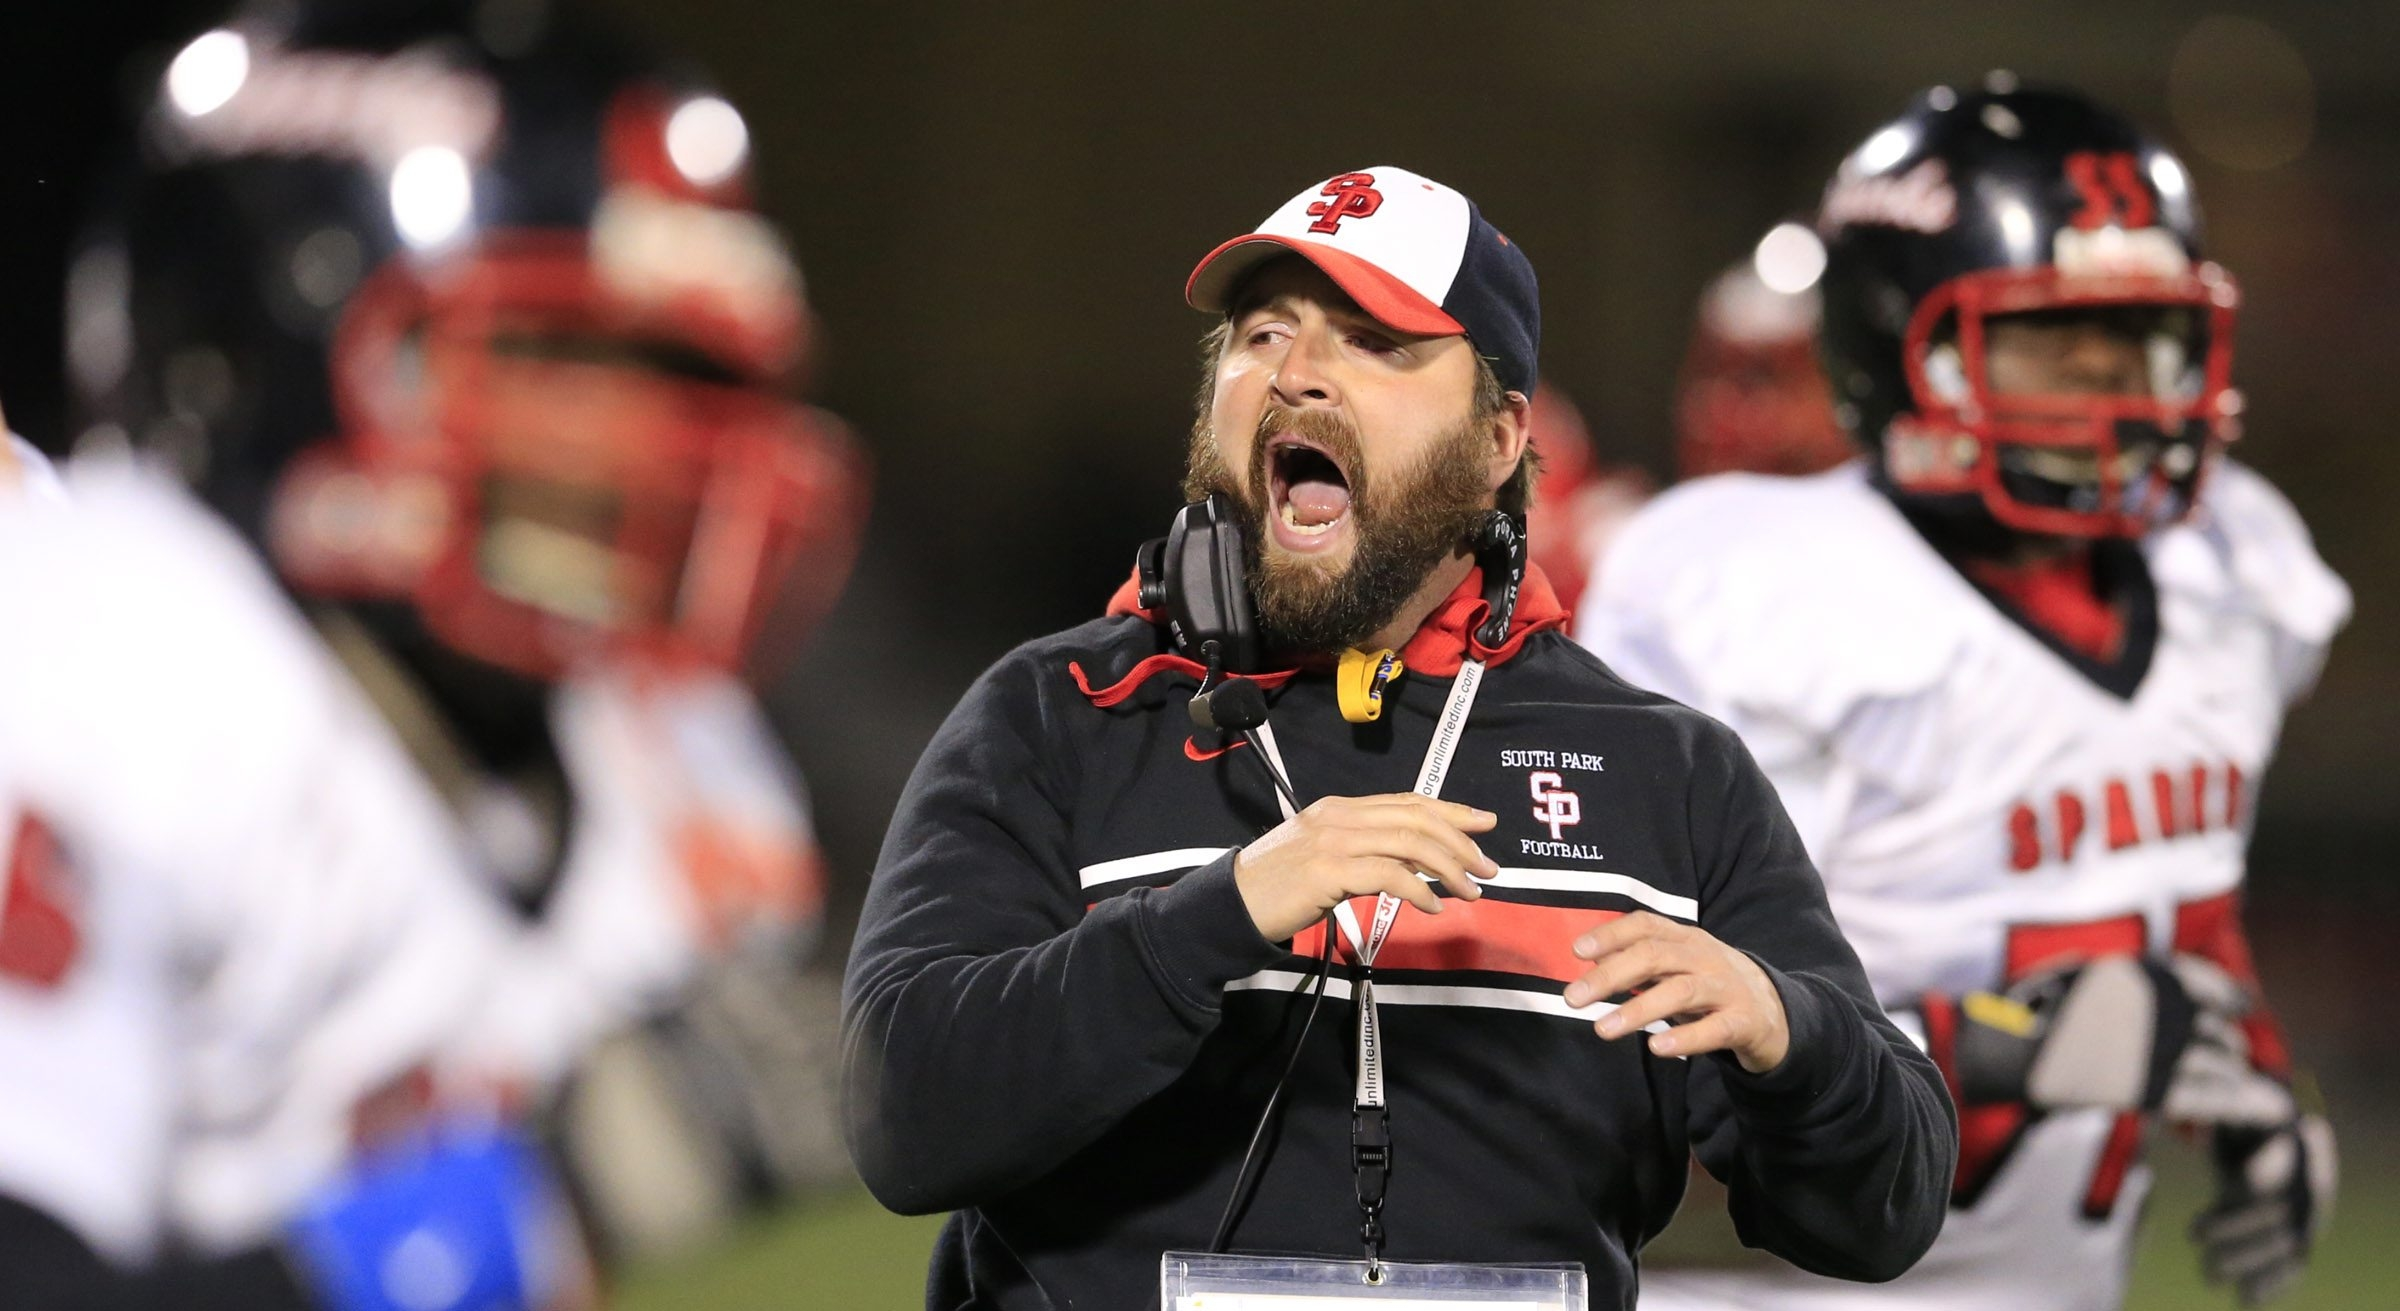 Coach Tim Delaney and the South Park Sparks had plenty to get excited about last season as they captured their first state title en route to earning the No. 1 ranking in Class A. (Harry Scull Jr./Buffalo News)